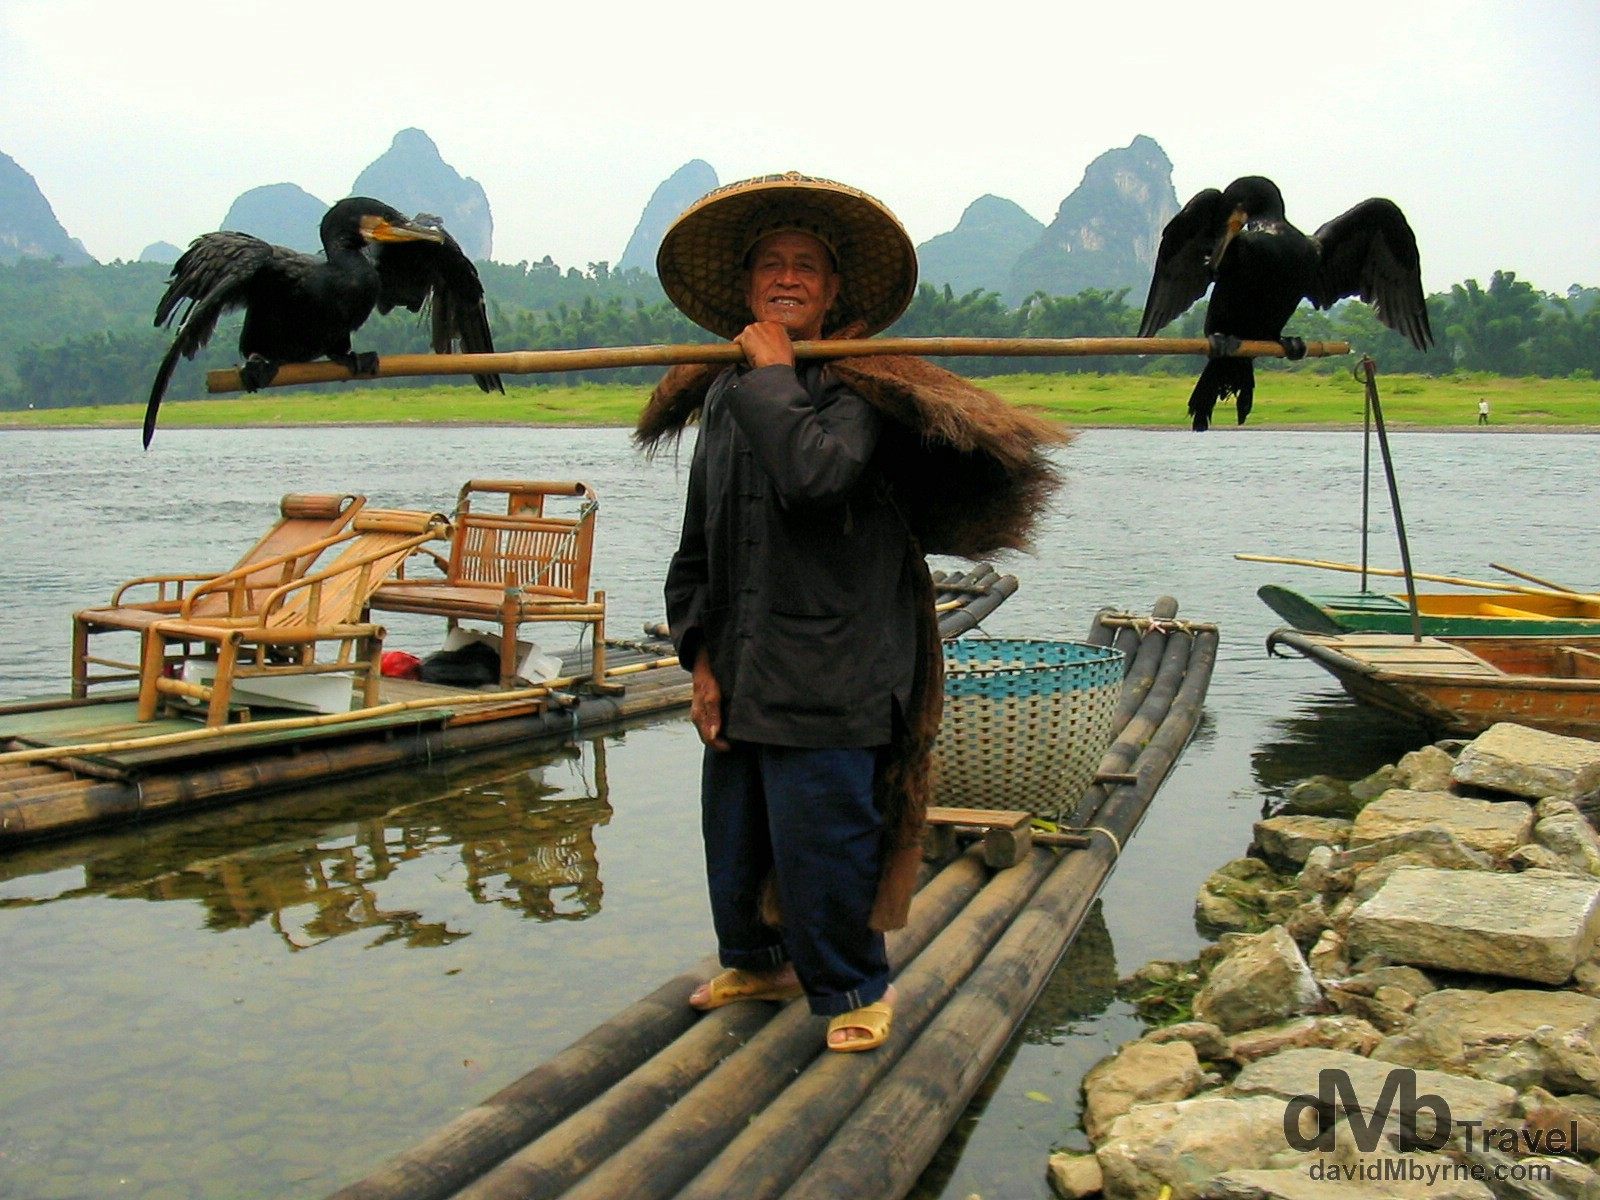 A Cormorant fisherman poses for a picture by the banks of the Li river in Yangshuo, Guangxi Province, Southern China. September 10th, 2004.